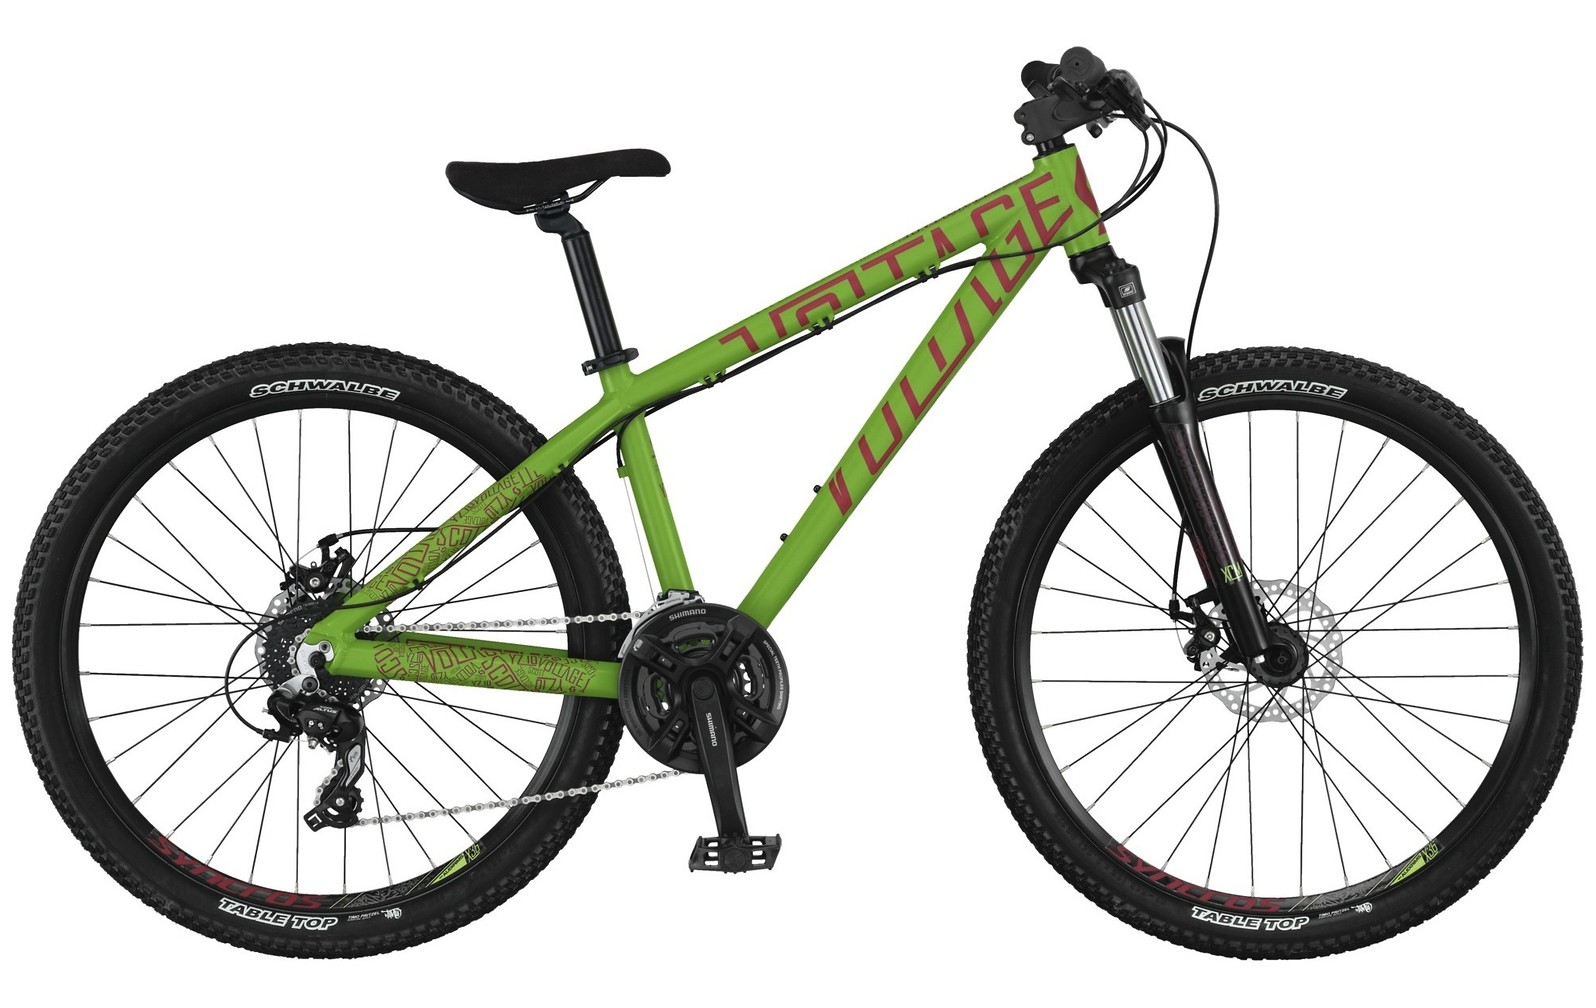 2014 Scott Voltage Yz 30 Bike Reviews Comparisons Specs